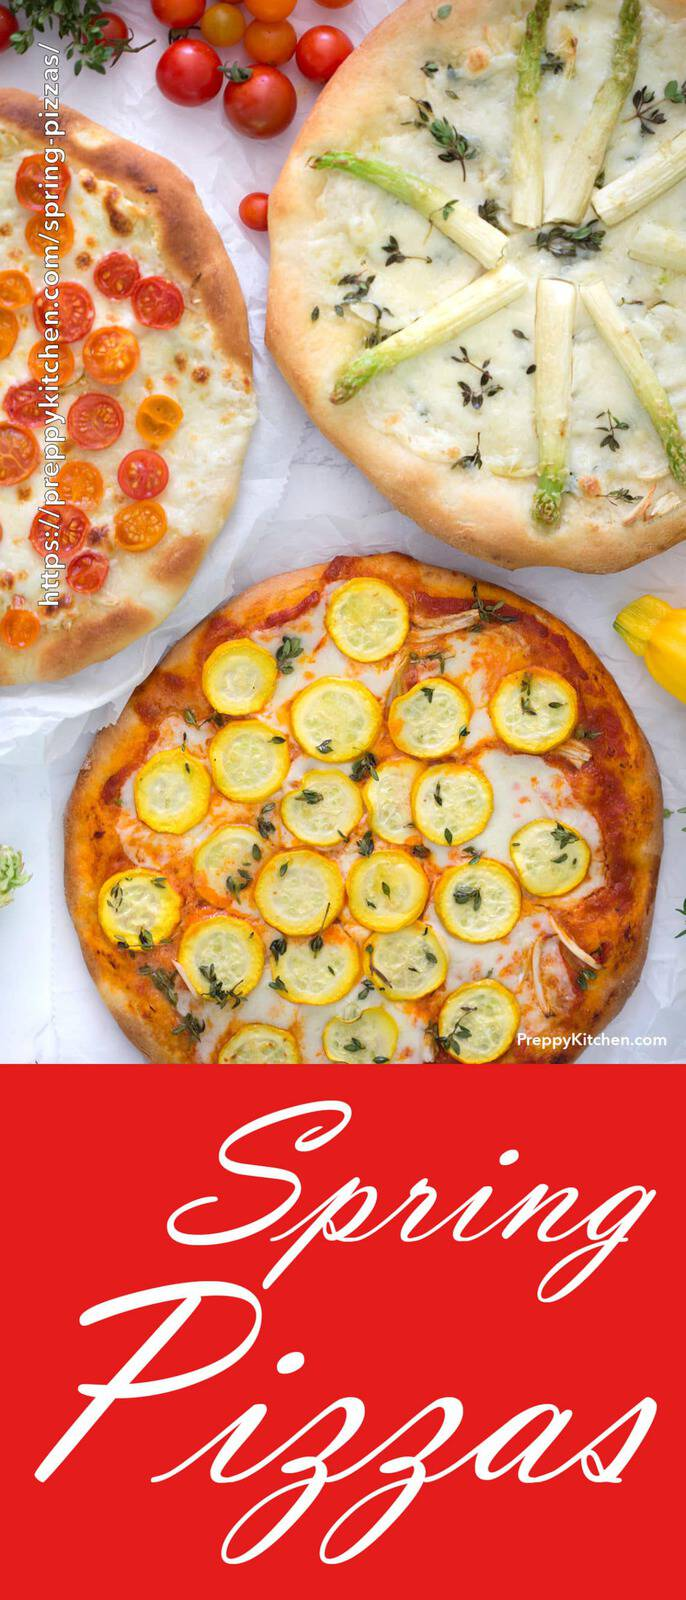 Pizzas with squash, asparagus and tomatoes